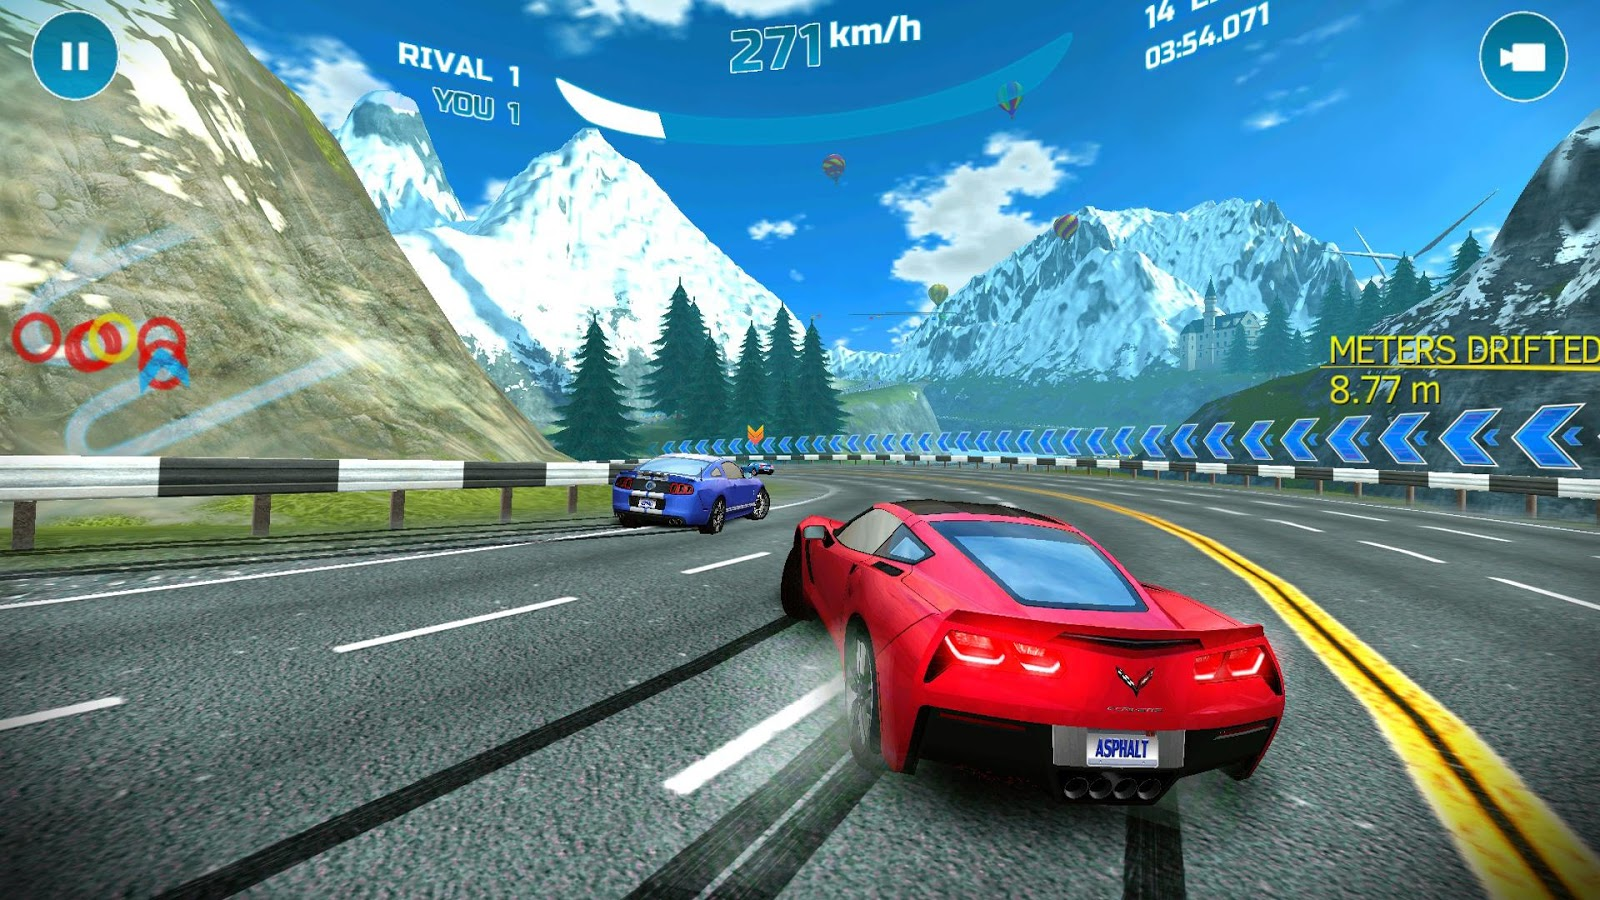 Asphalt: Nitro Apk v1.7.0w Моd (Unlimited Money + More)